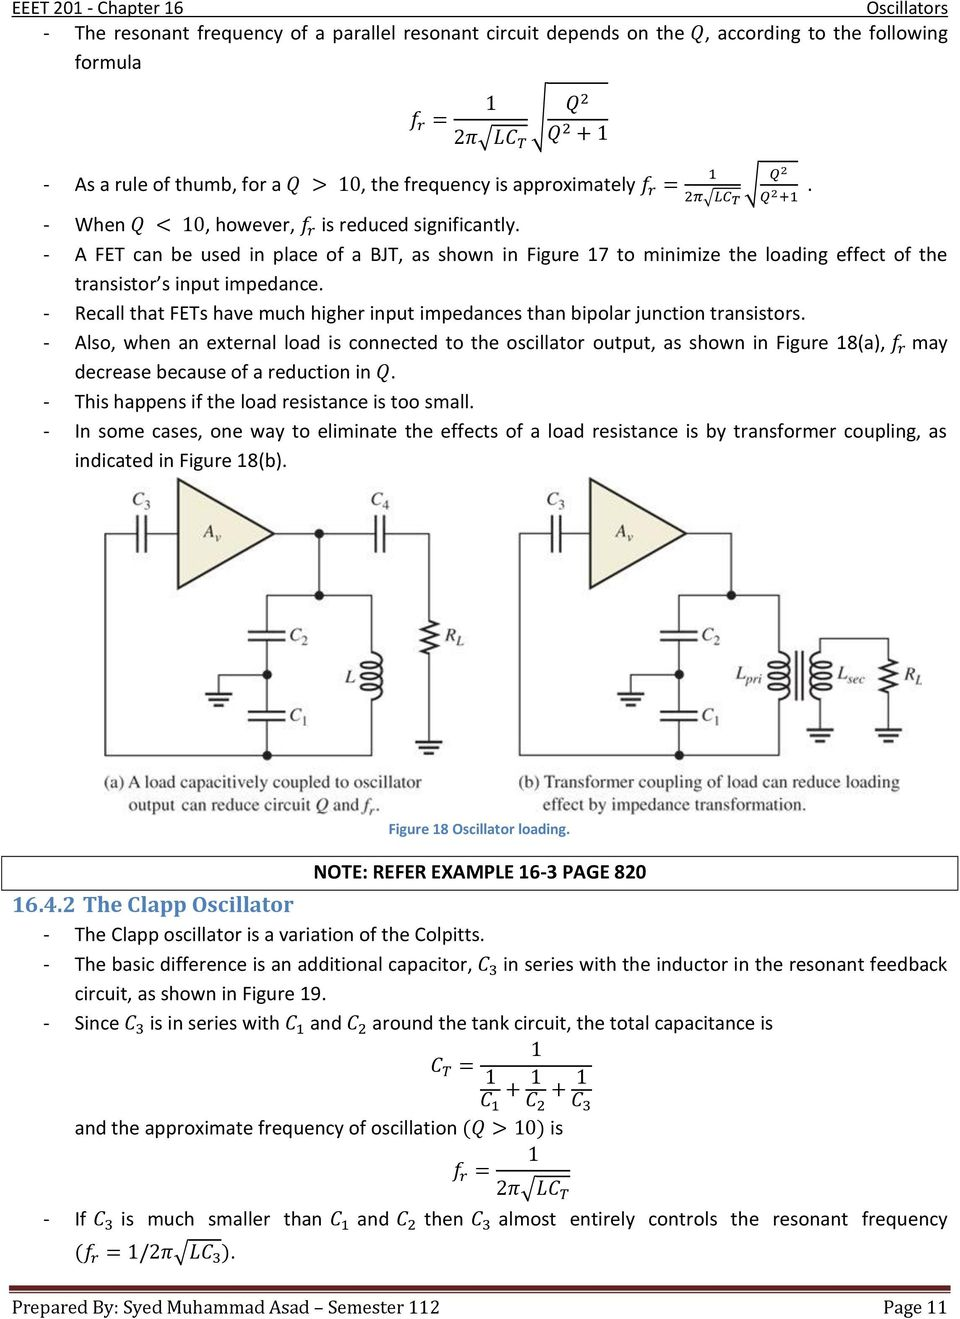 Chapter 16 Oscillators Pdf The Colpitts Oscillator Utilizes A Tank Circuit Lc In Feedback Recall That Fets Have Much Higher Input Impedances Than Bipolar Junction Transistors